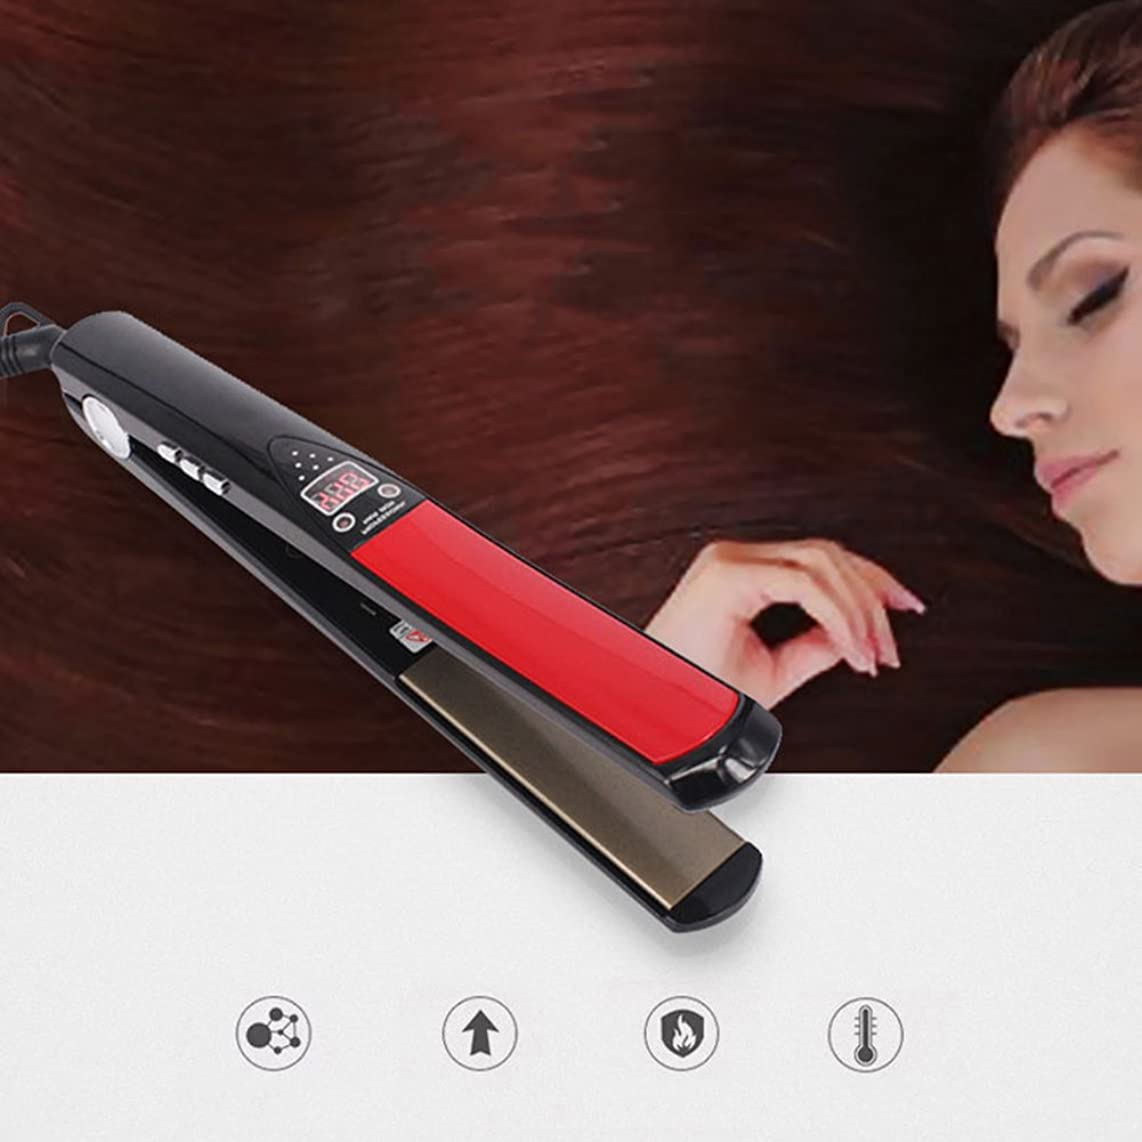 Hair Straightener Negative Ions Iron, 2 In 1 Electric Stone Ceramic Curling Straight Hair Dual Use Fast Heating Auto Shut Off Dual Voltage For Home Or Travel Use